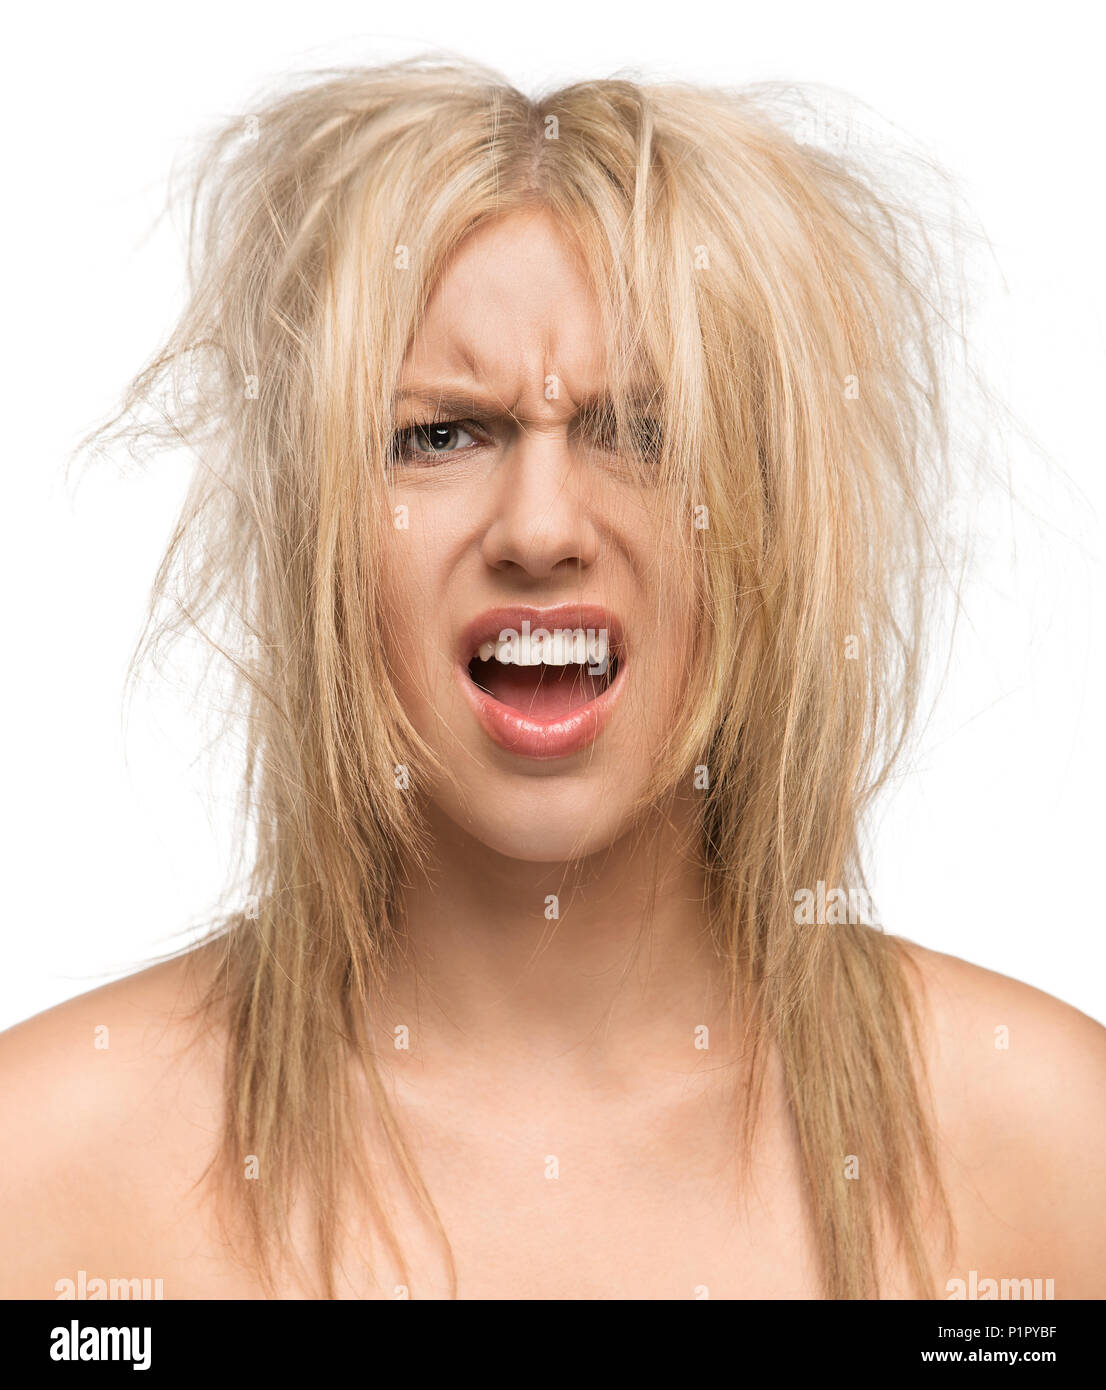 Bad Hair Day Funny Concept Stock Photo 207643507 Alamy